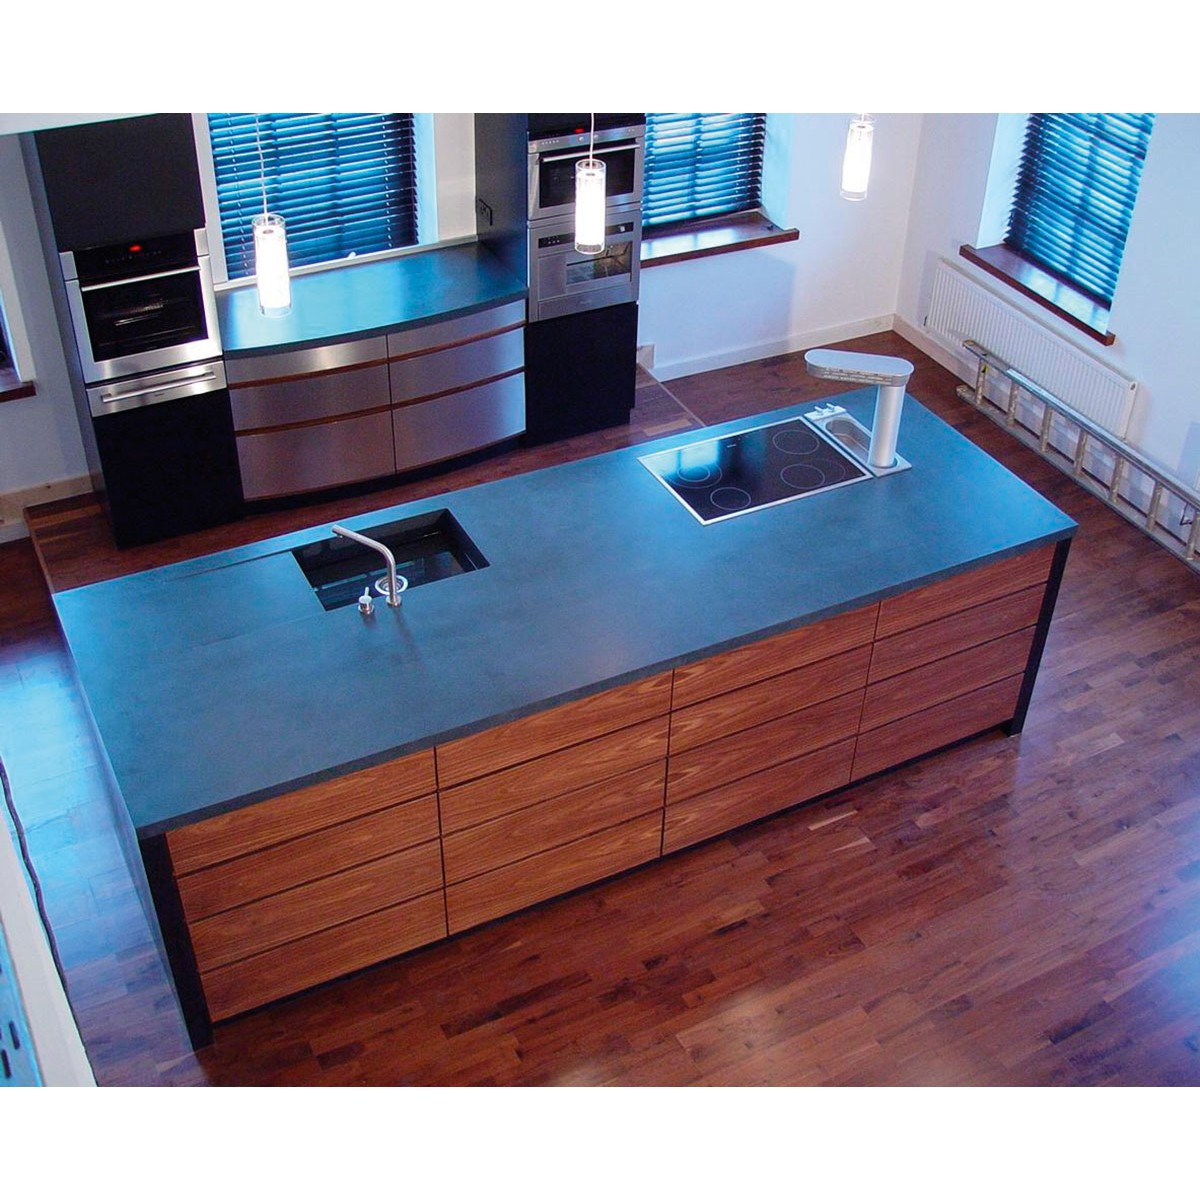 Durat 441 Recycled Polyester Countertop